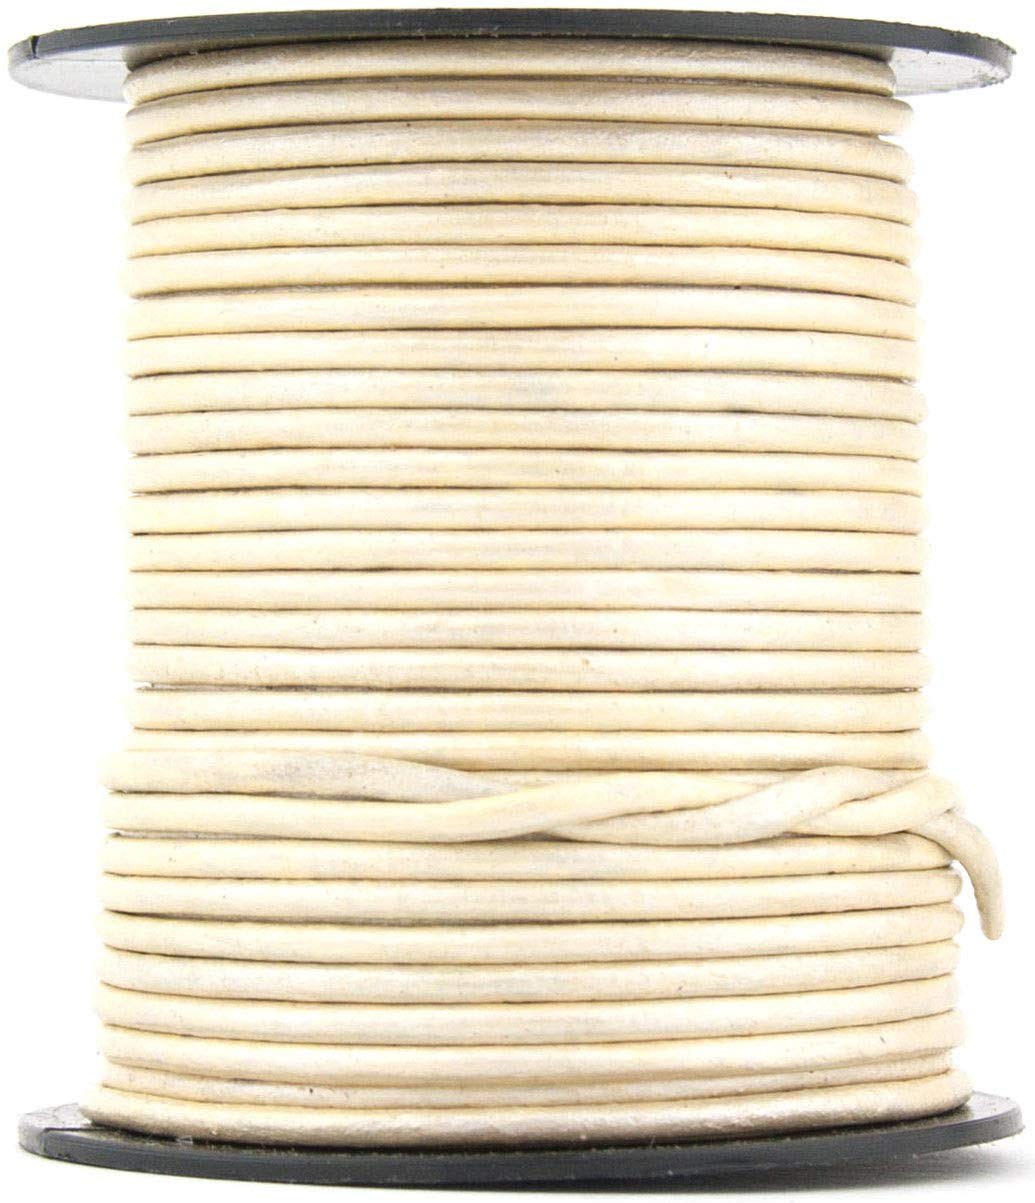 Pearl Metallic Round Leather Cord 1.5mm 100 Meters (109 Yards) by RERA SHOP (Image #1)